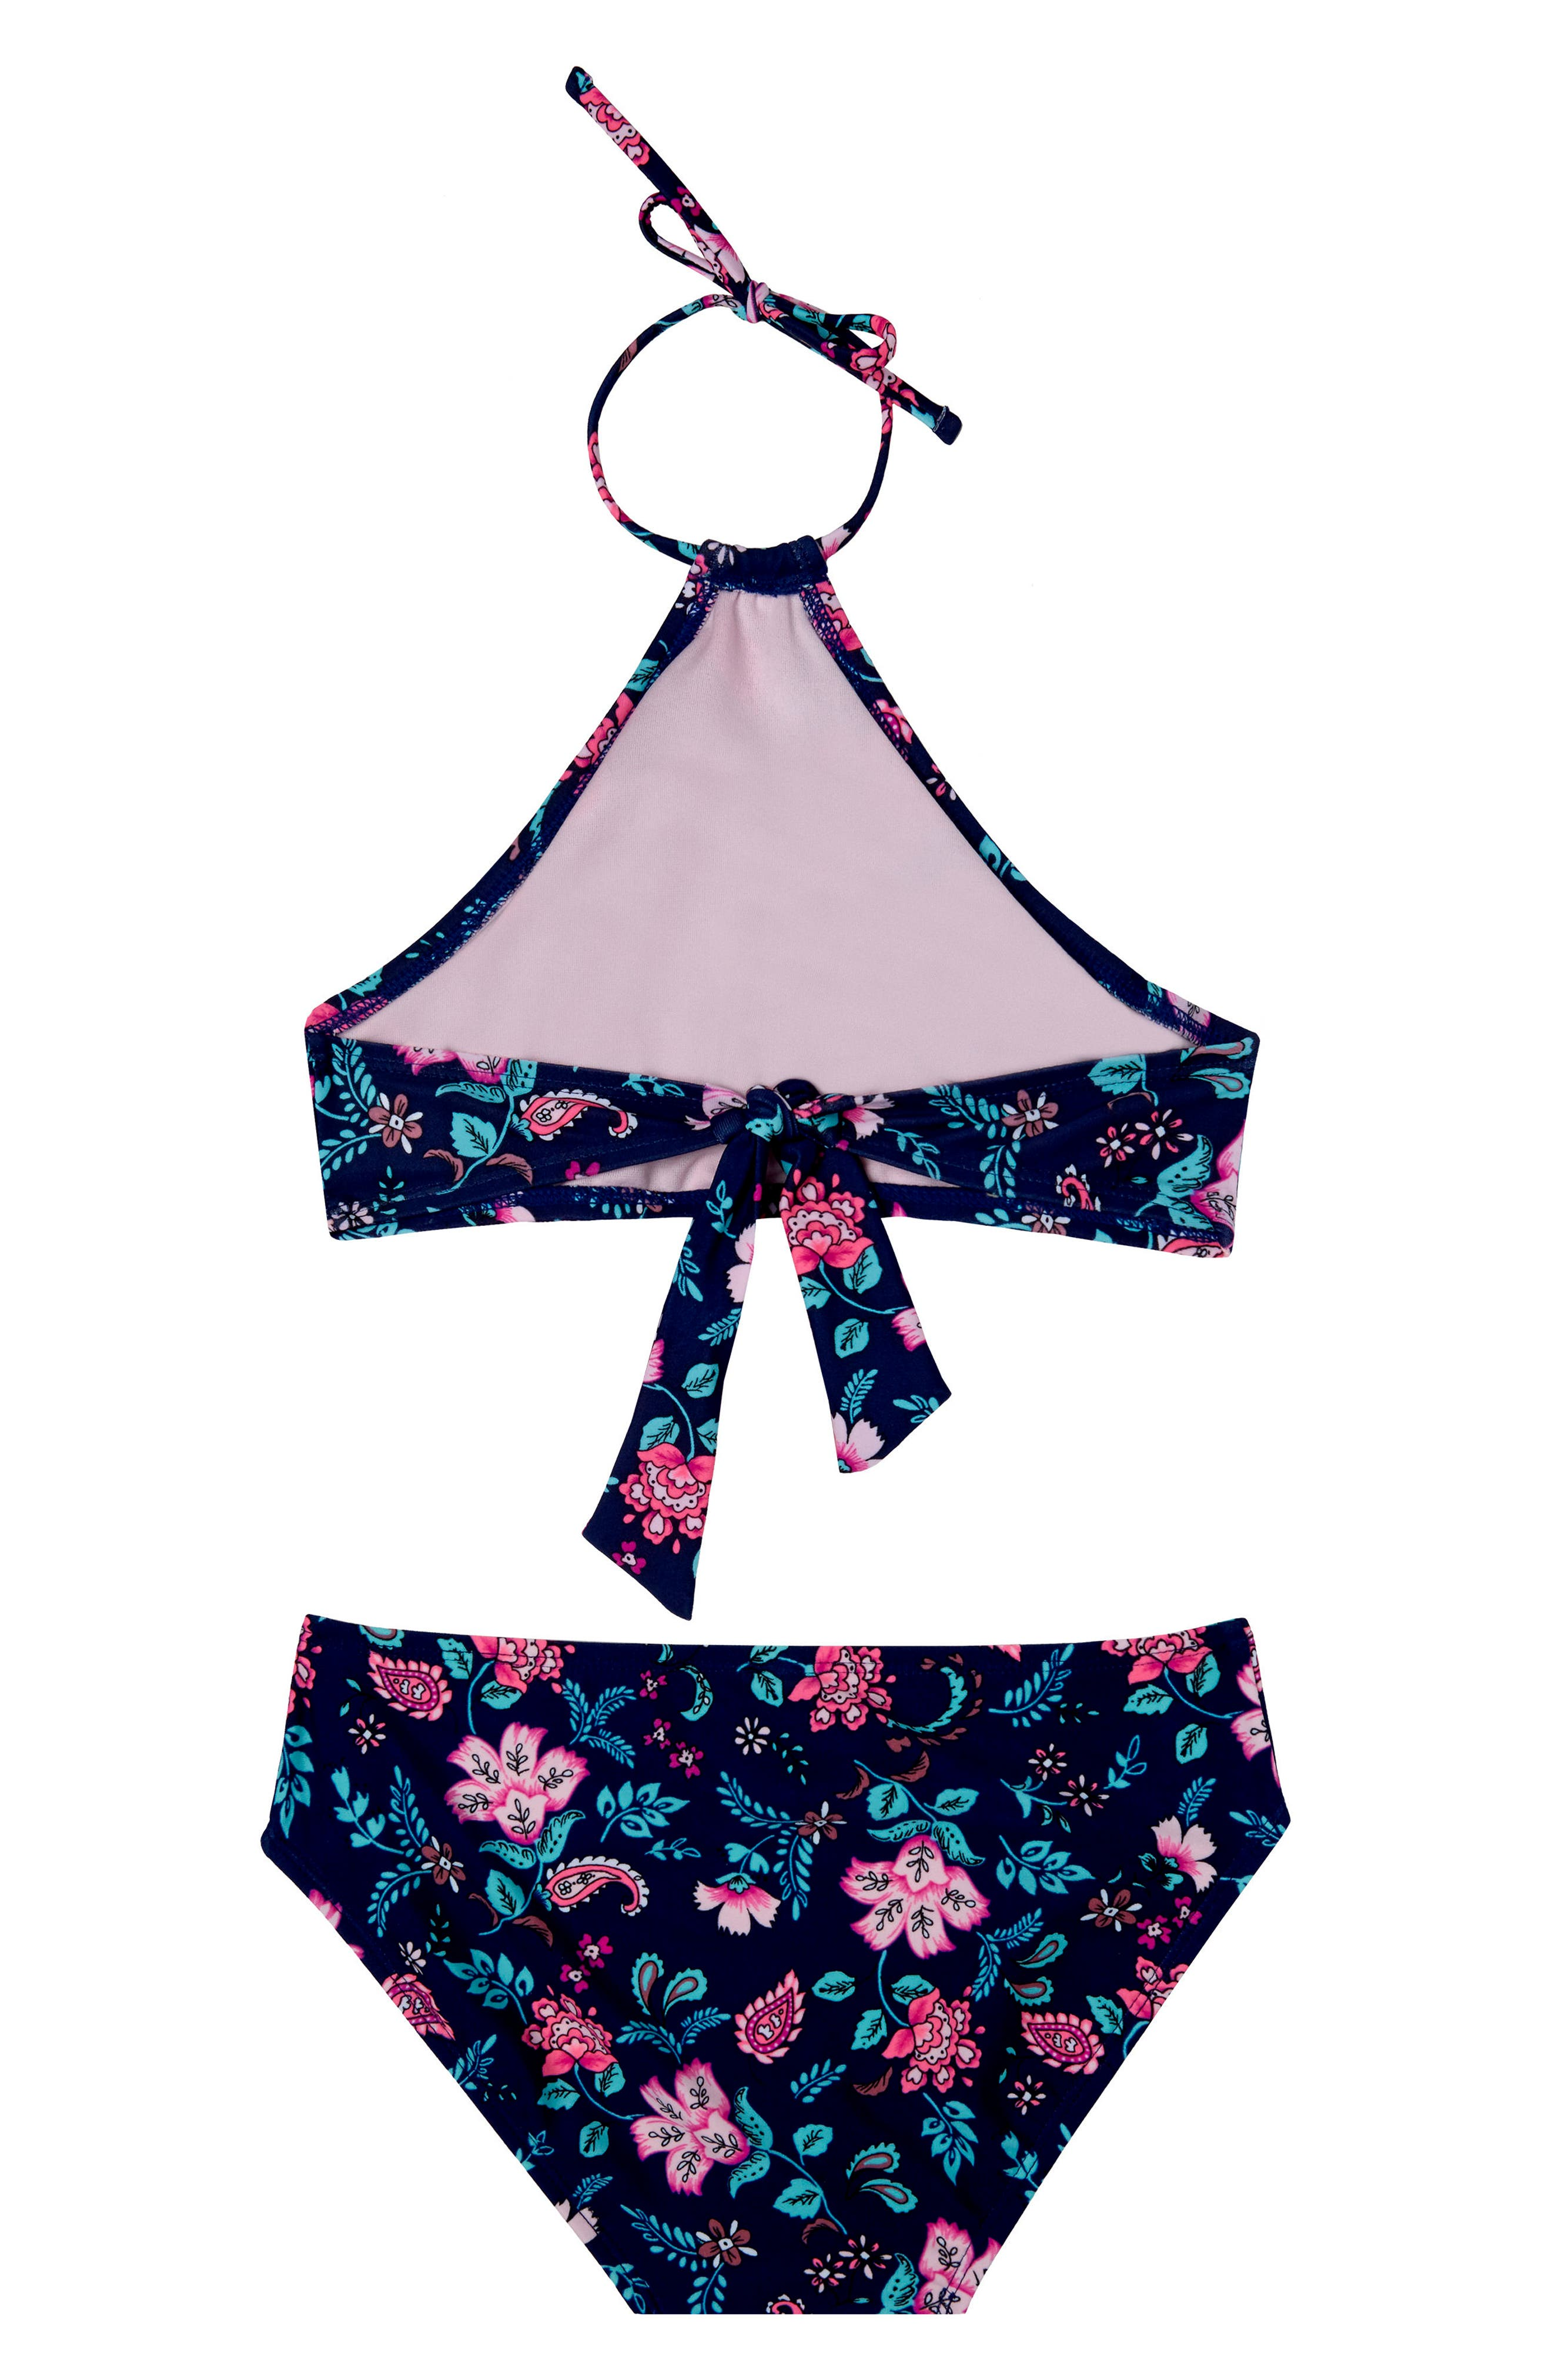 Floral Field Two-Piece Swimsuit,                             Alternate thumbnail 2, color,                             NAVY